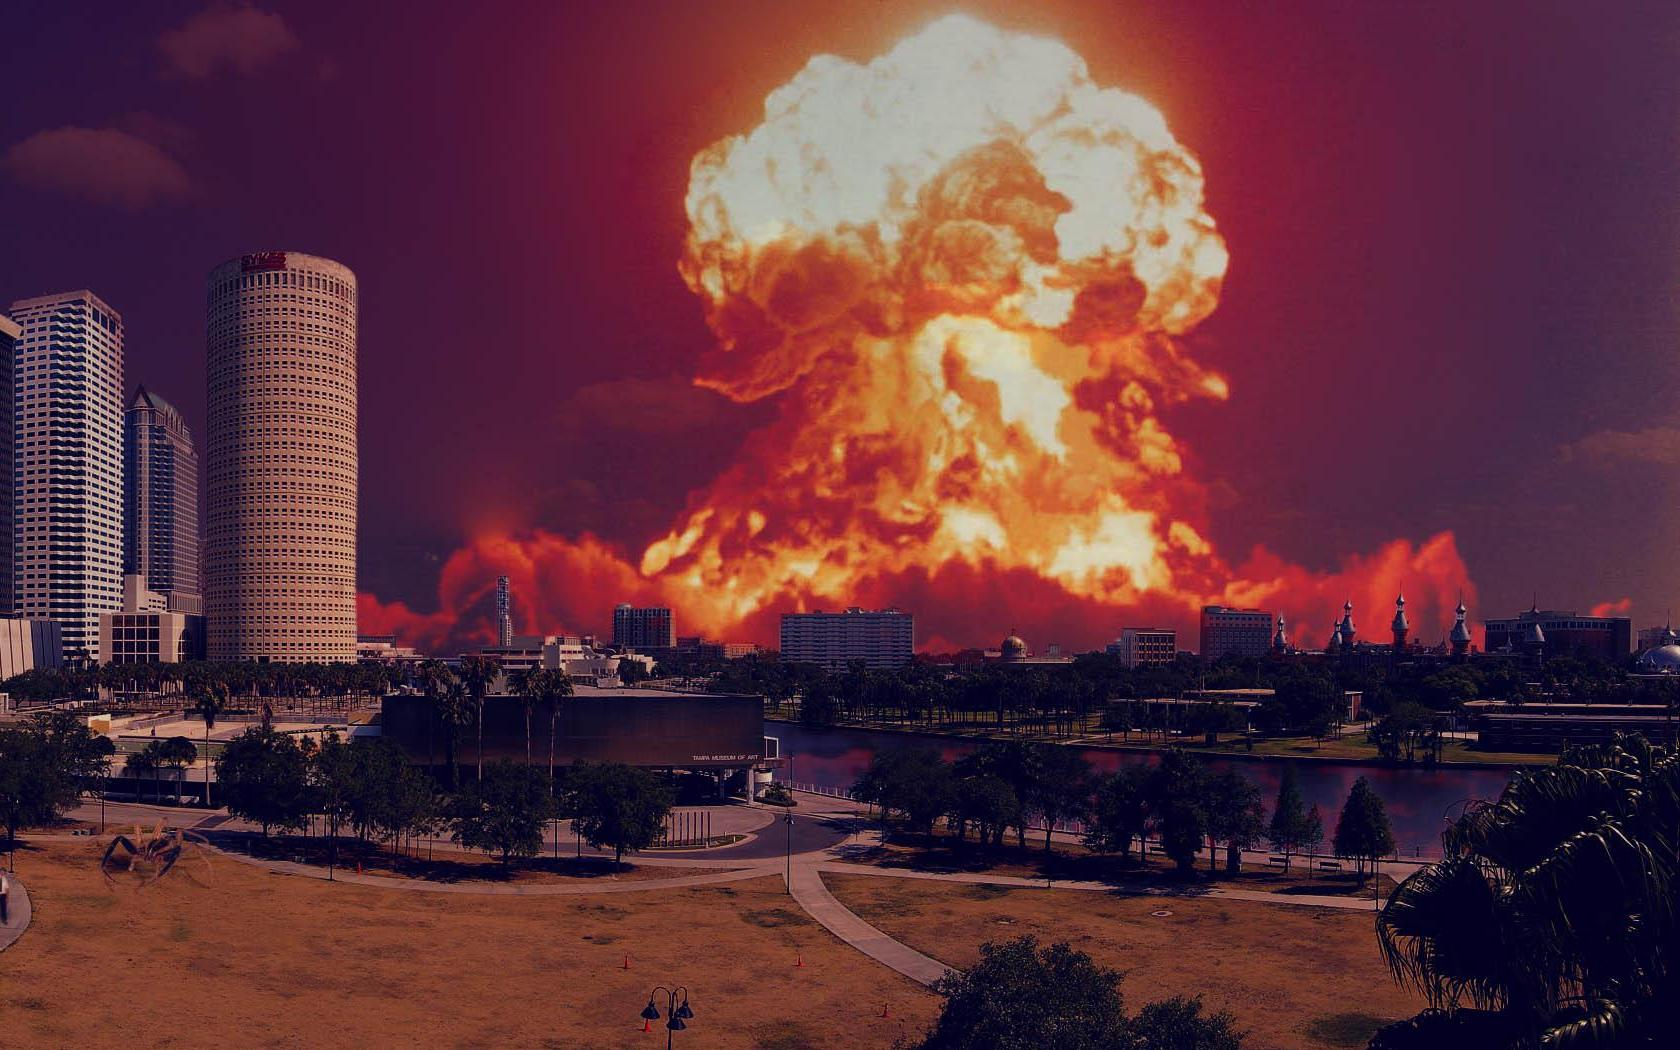 Nuclear Explosion Wallpaper HD - WallpaperSafari